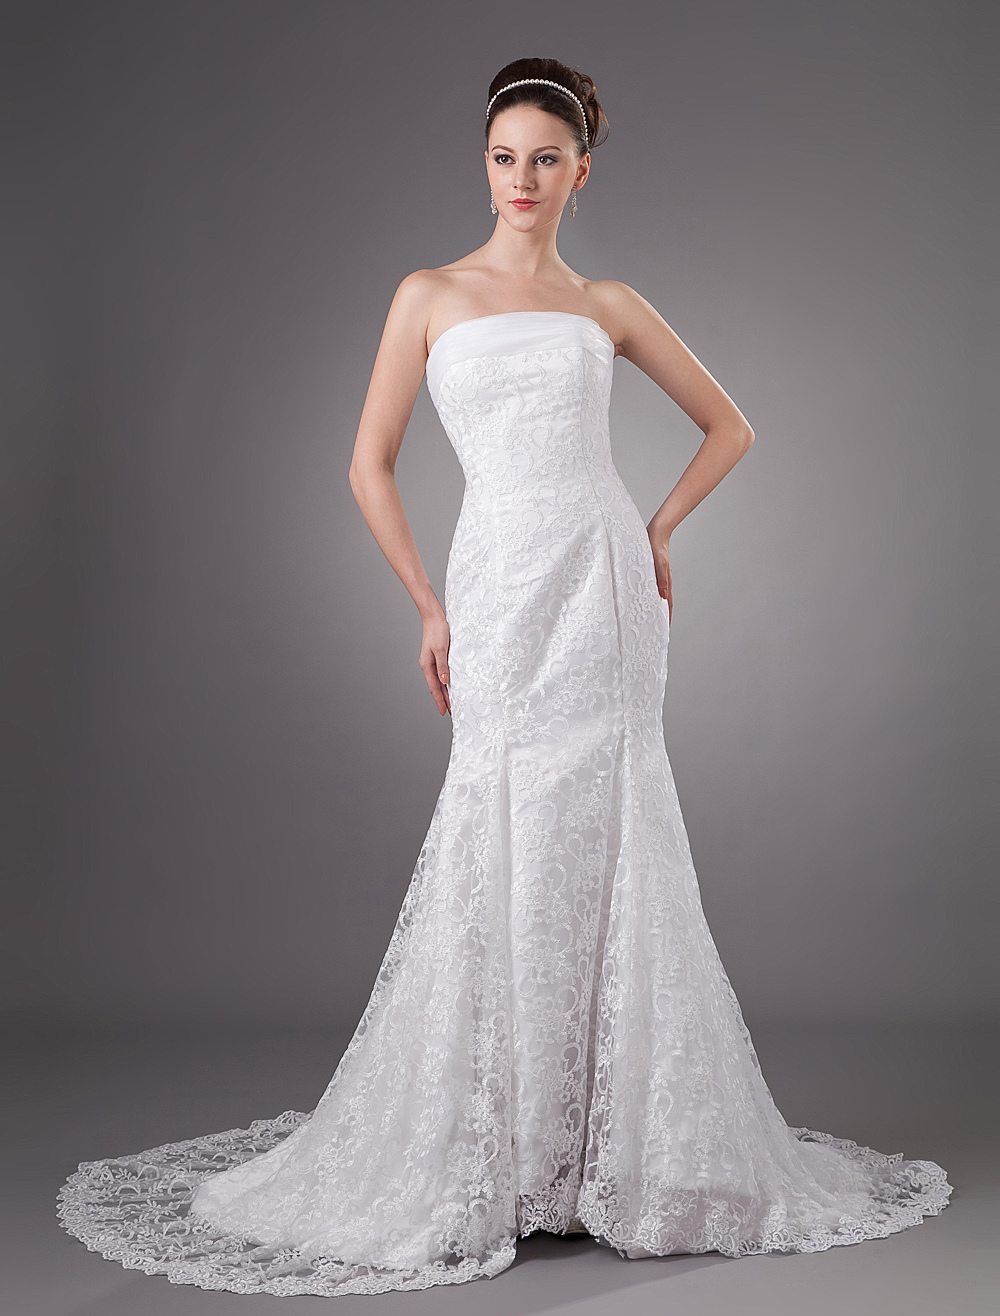 Buy White Lace Beautiful Strapless Mermaid Trumpet Wedding Dress for $249.99 in Milanoo store